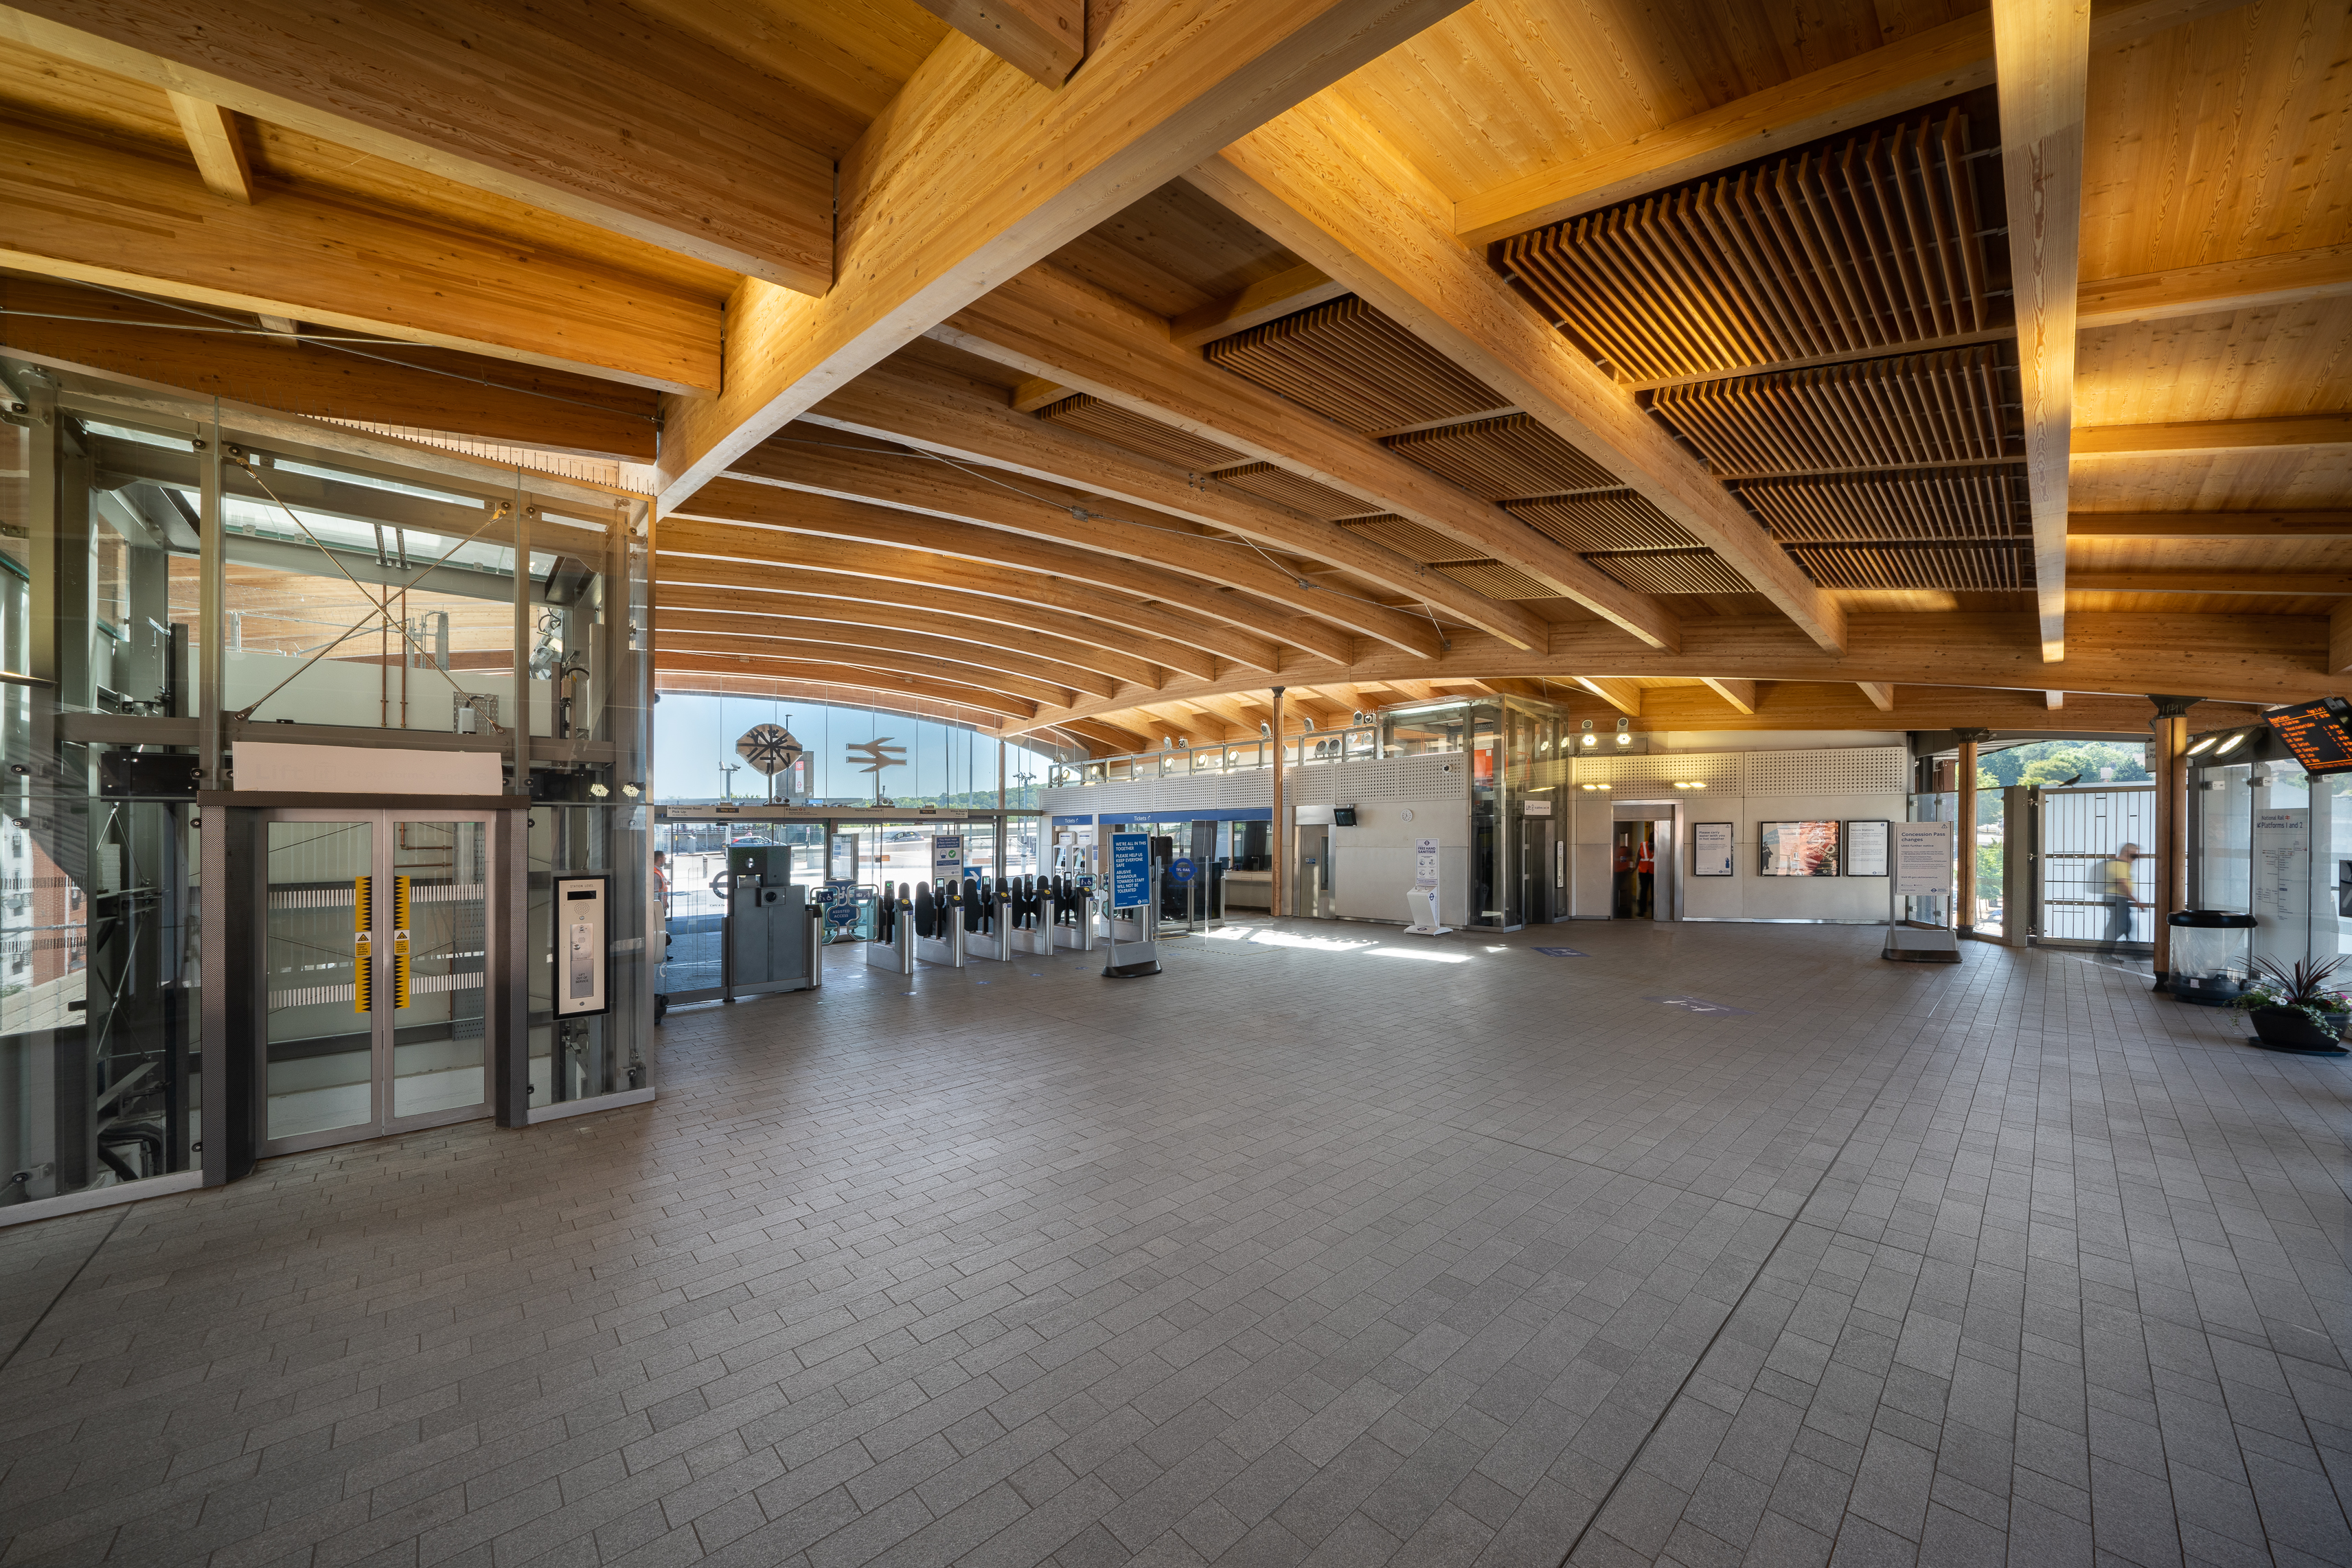 <p>The timber roof imparts a warm, natural quality to the interior of the station. Photography © Richard Lewisohn</p>